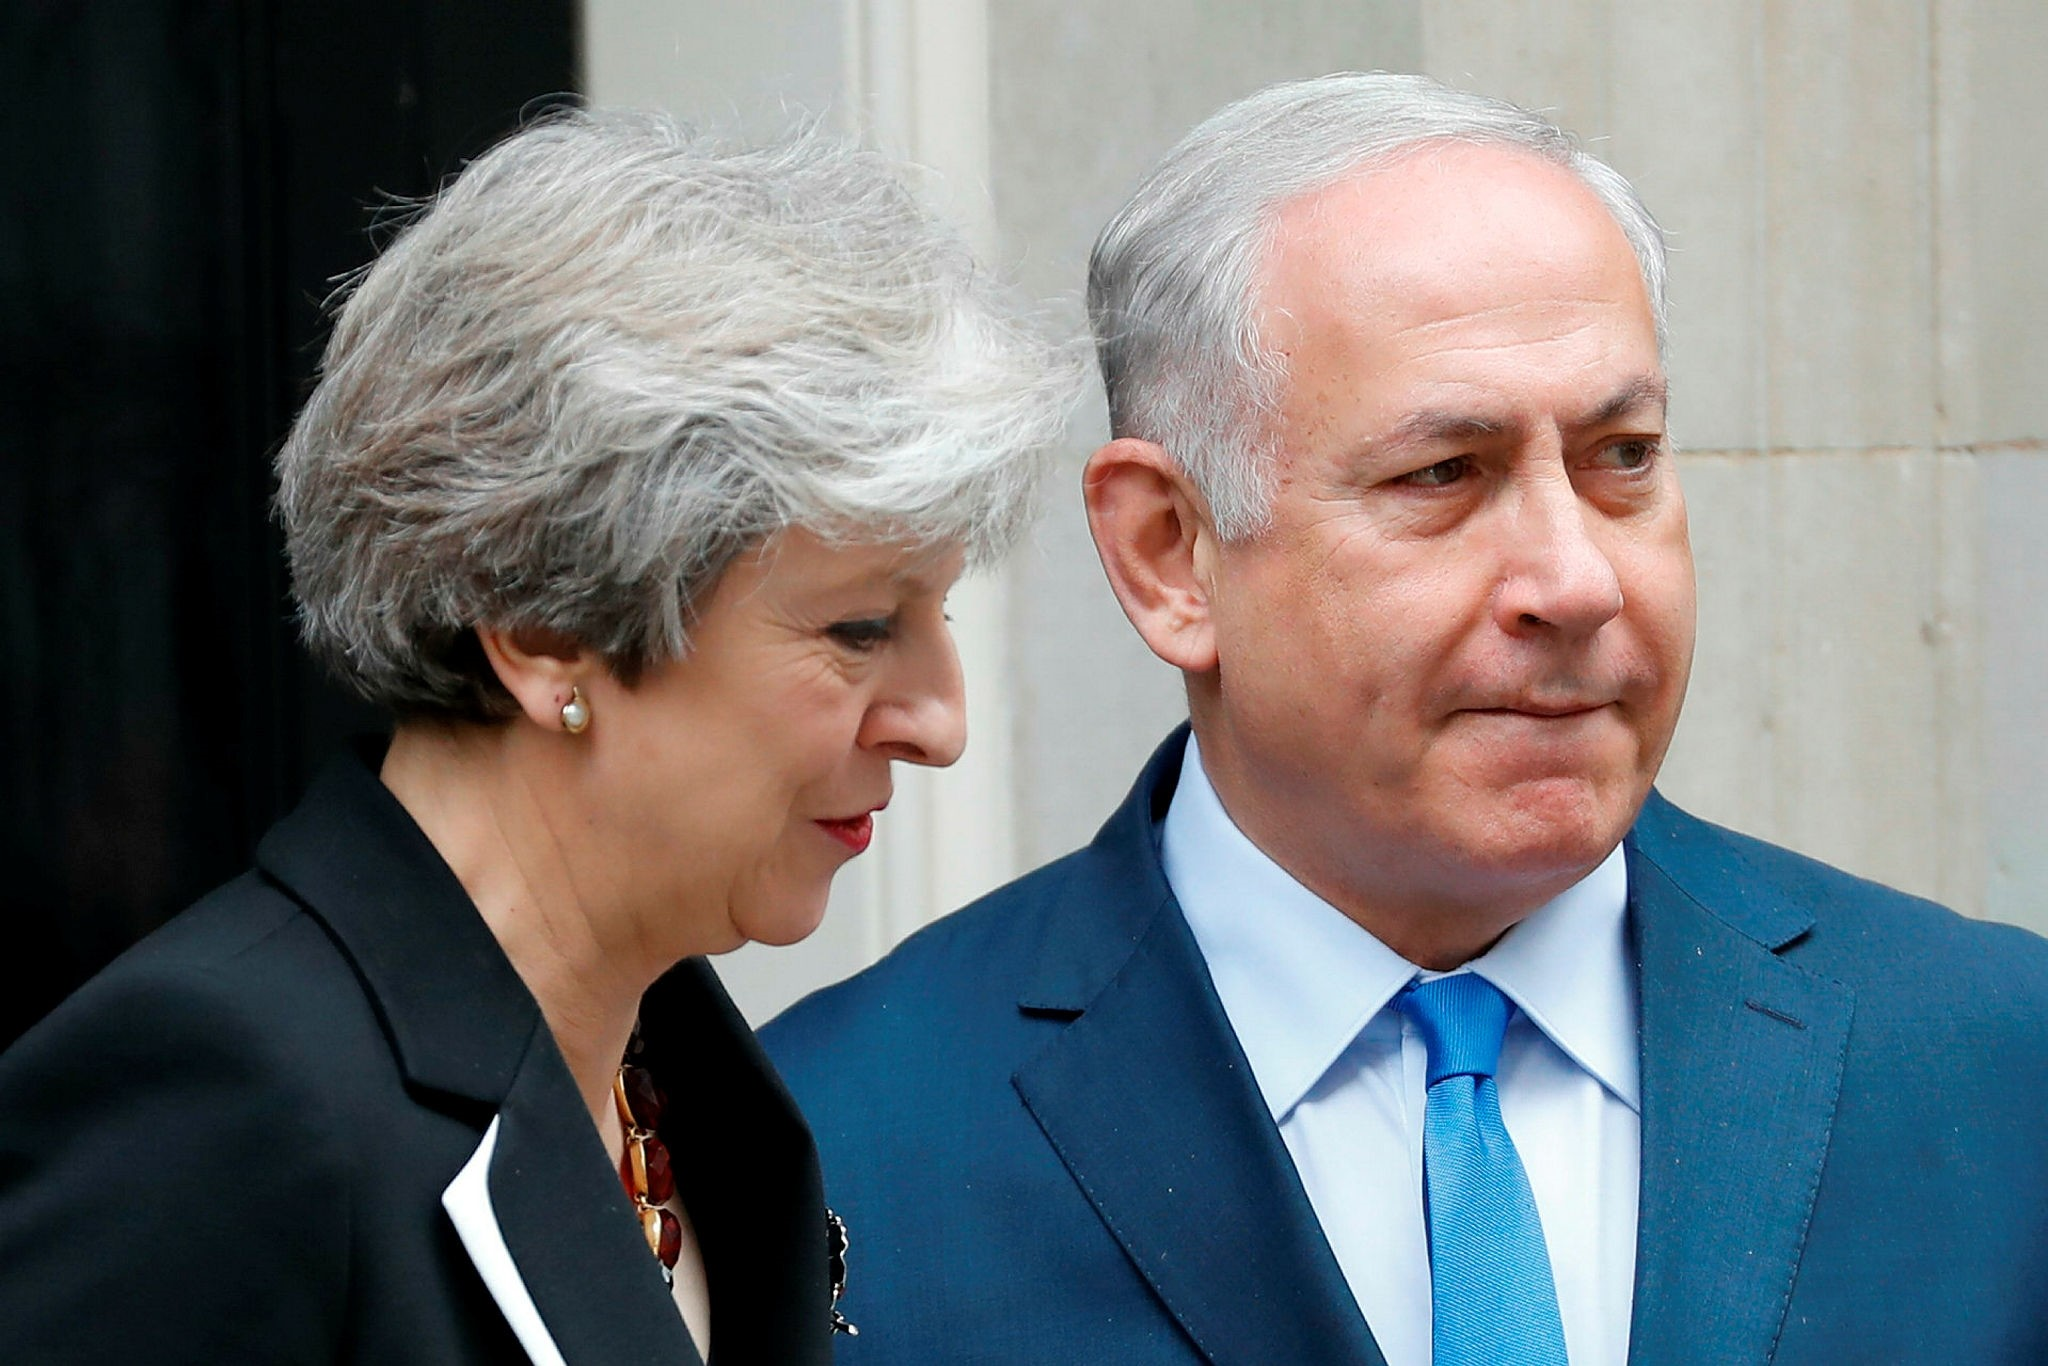 British Prime Minister Theresa May (L) poses with Israeli Prime Minister Benjamin Netanyahu outside 10 Downing street in London on November 2, 2017. (AFP Photo)